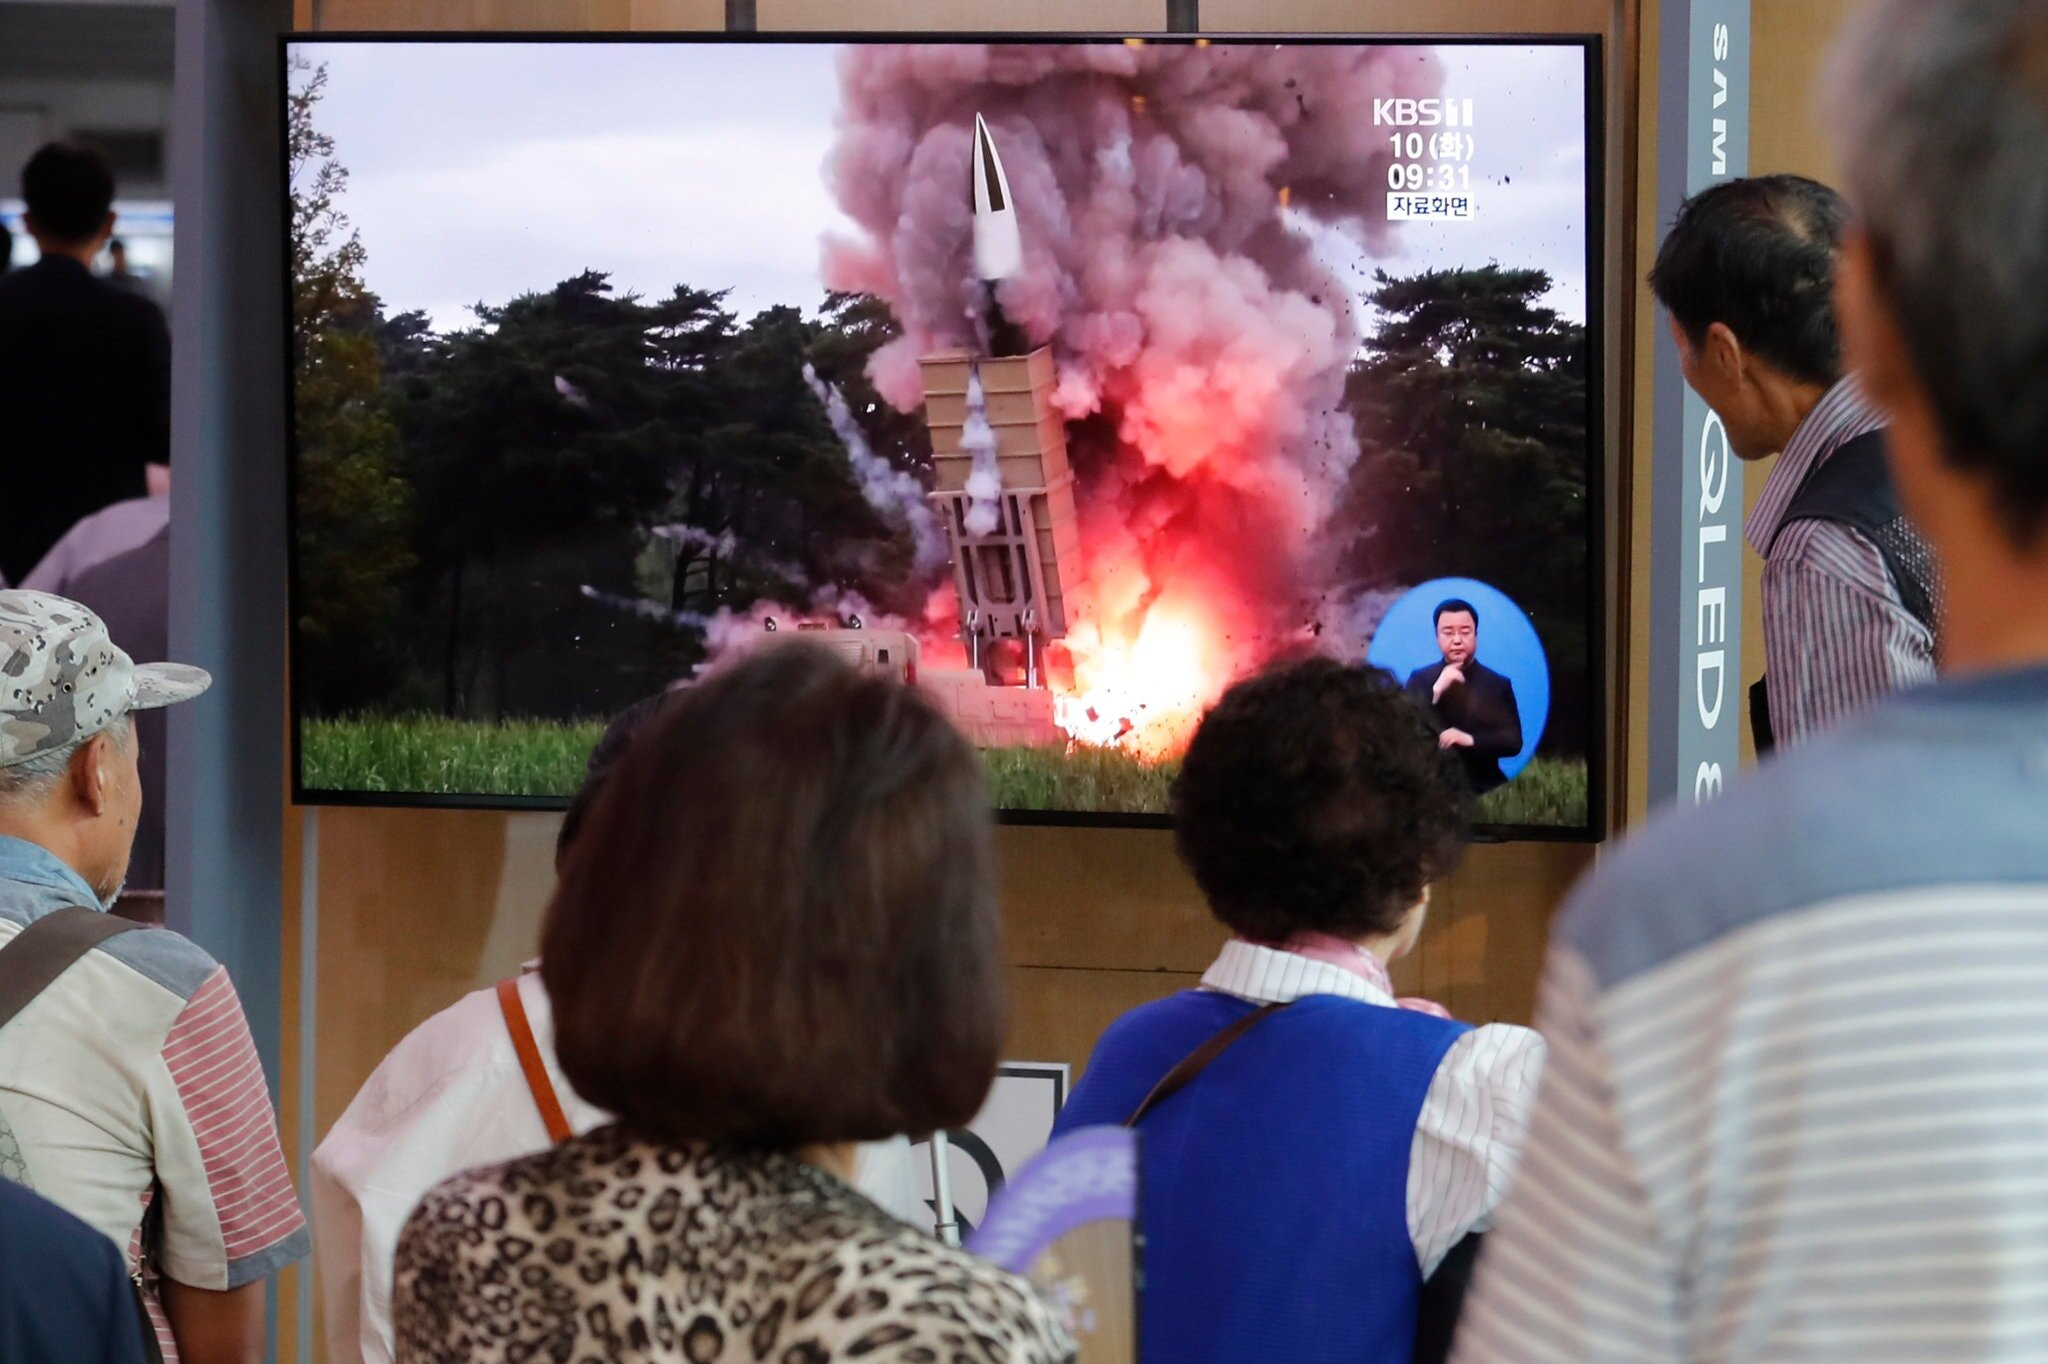 People at the Seoul Railway Station Tuesday saw a file image of a North Korean missile launch on a TV program. Photo courtesy: Ahn Young-Joon/Associated Press